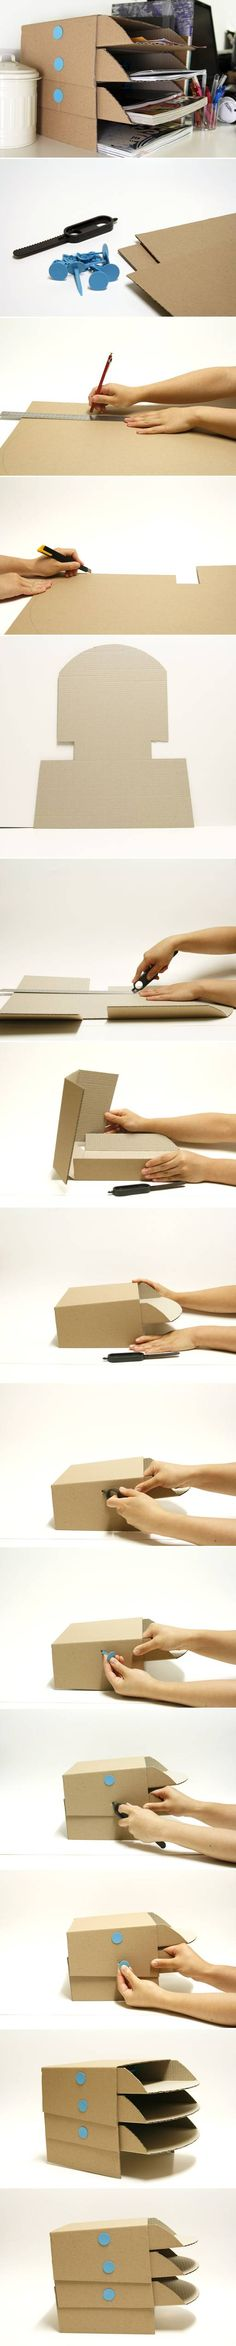 DIY Cardboard Desk Tray